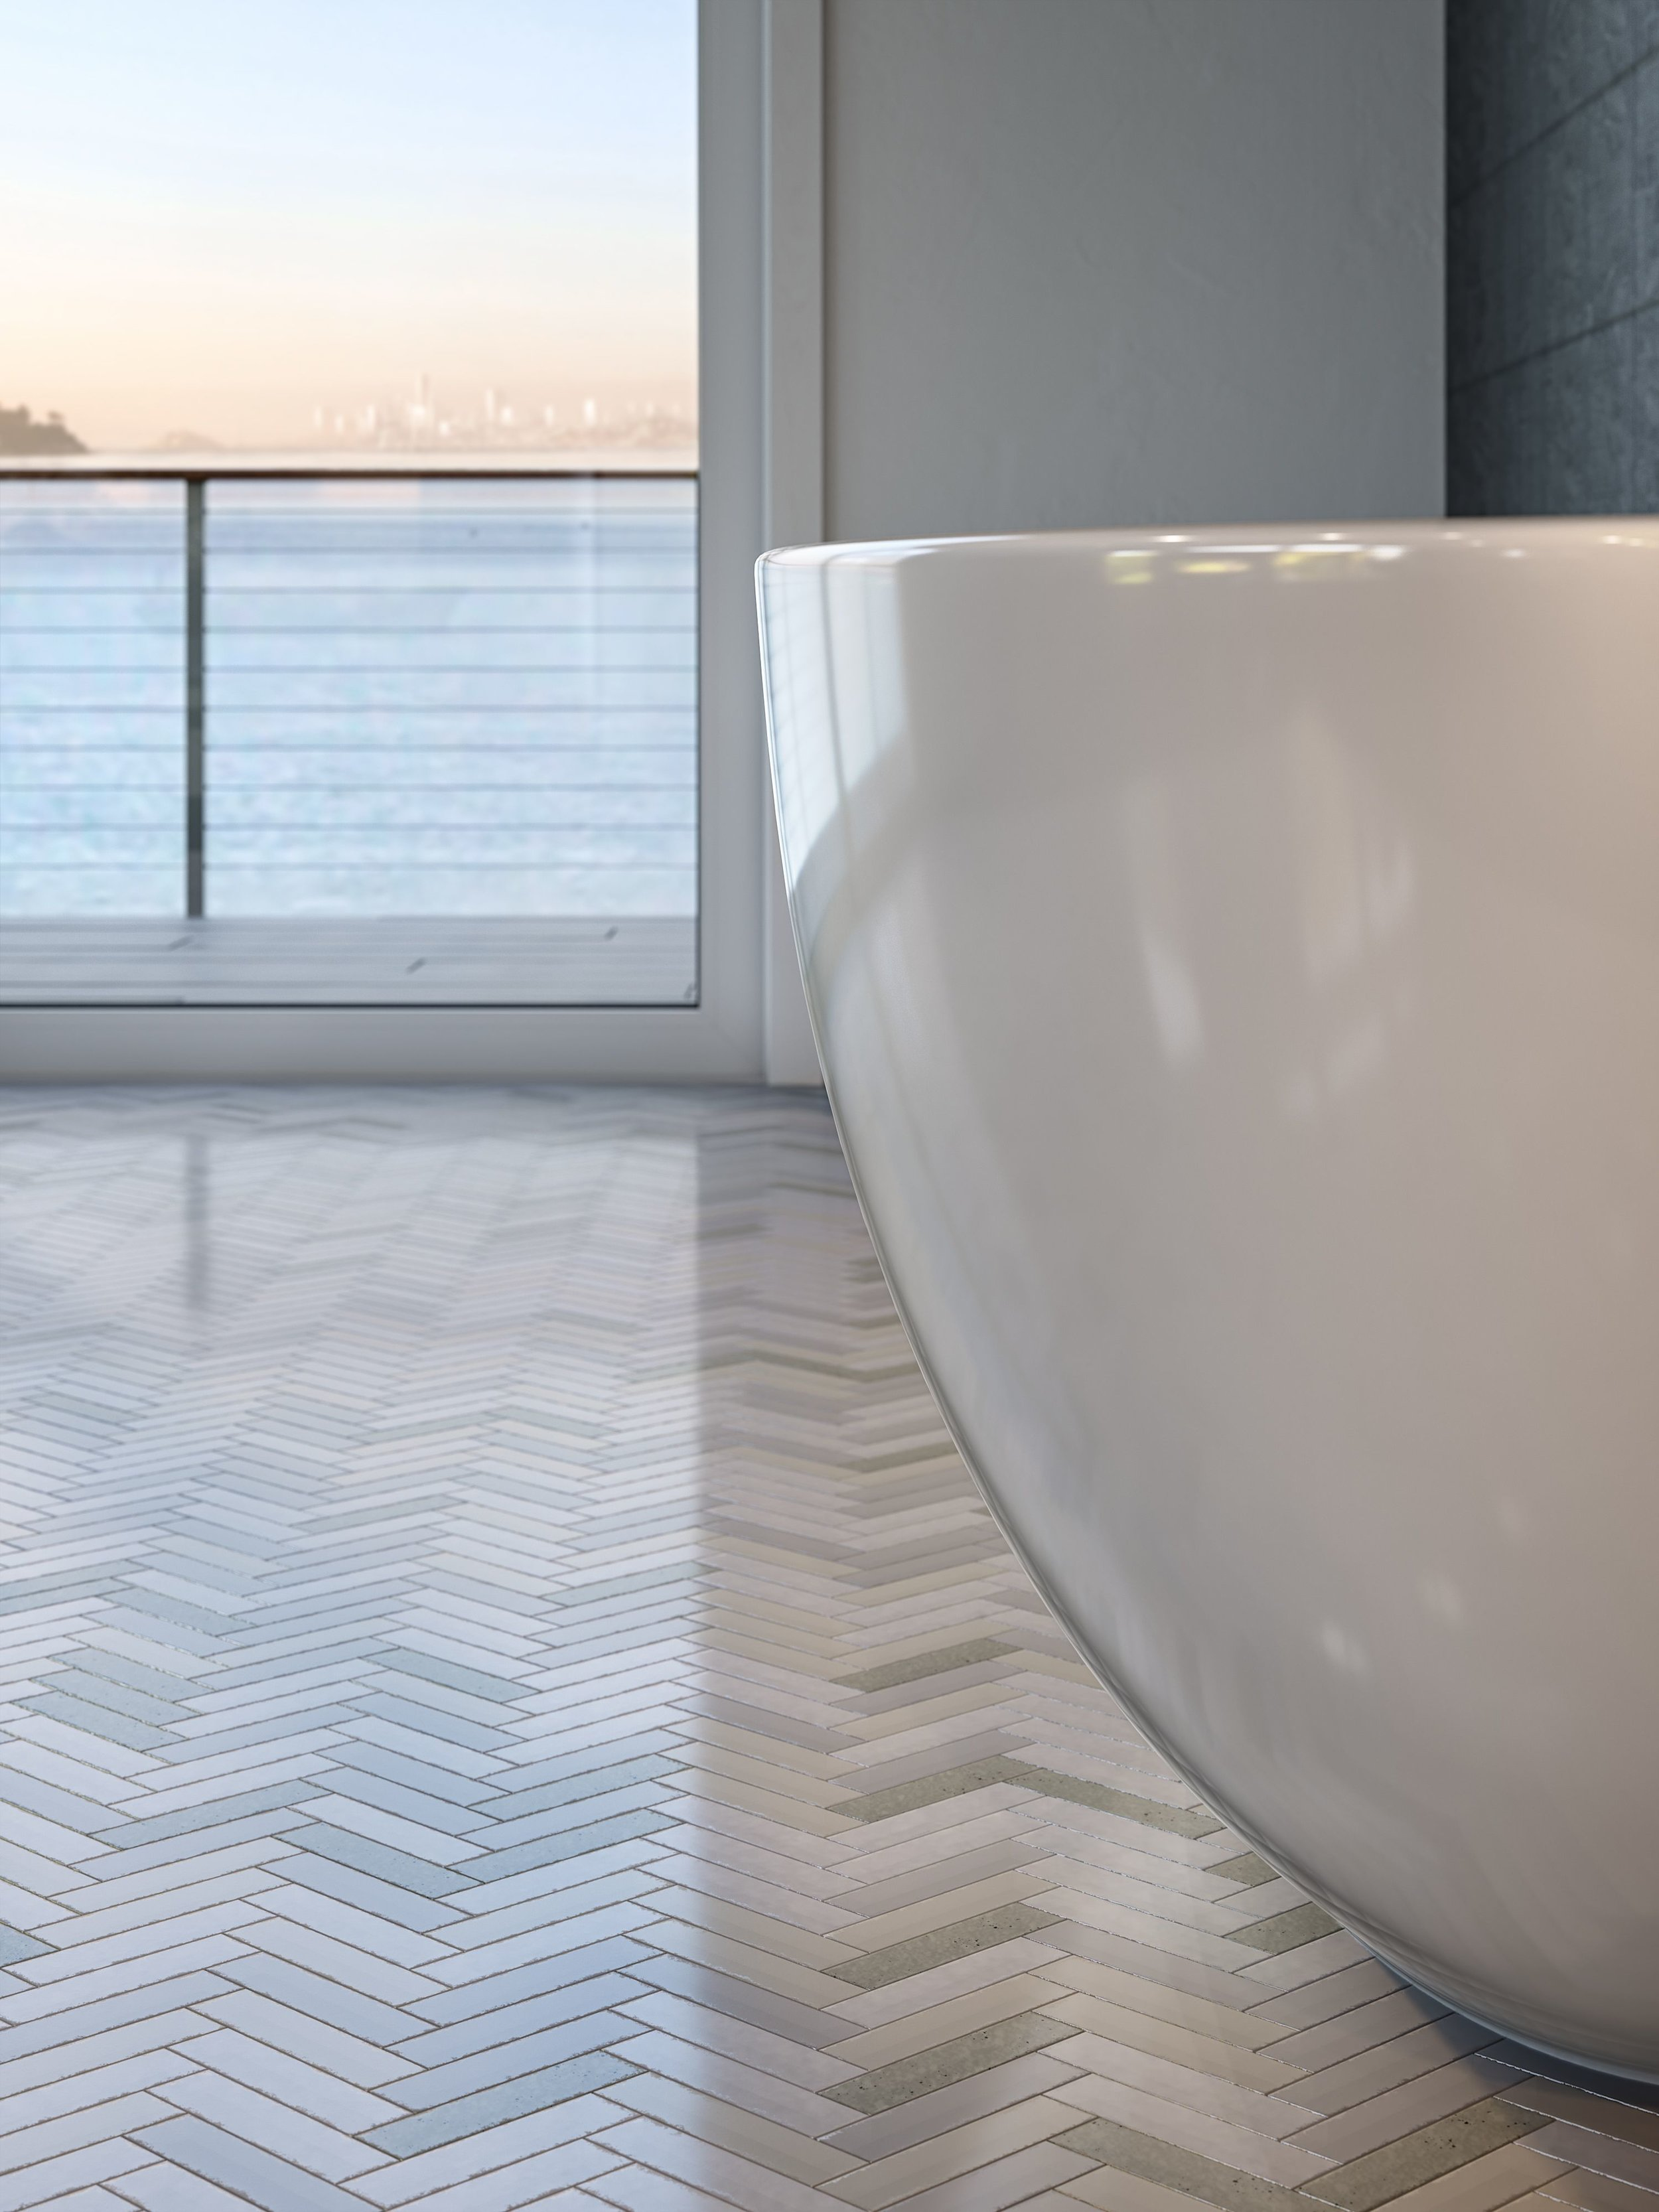 The four-bedroom residence at The Pointe features Carrara marble slab and hones stone countertops, Waterworks fixtures and ceramic tiling